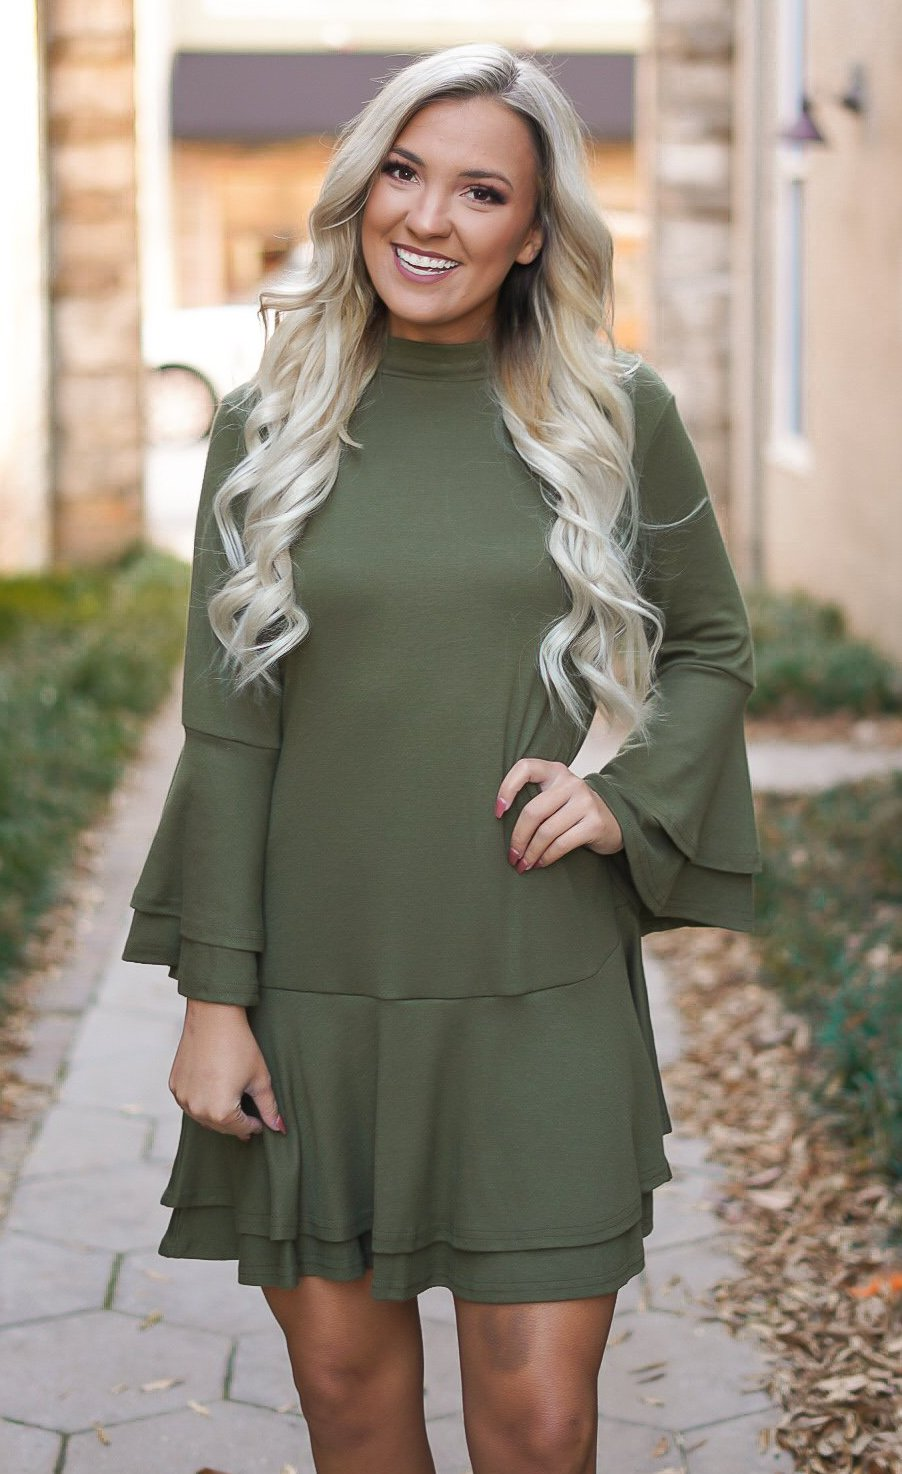 What's On Your Mind Dress - Olive